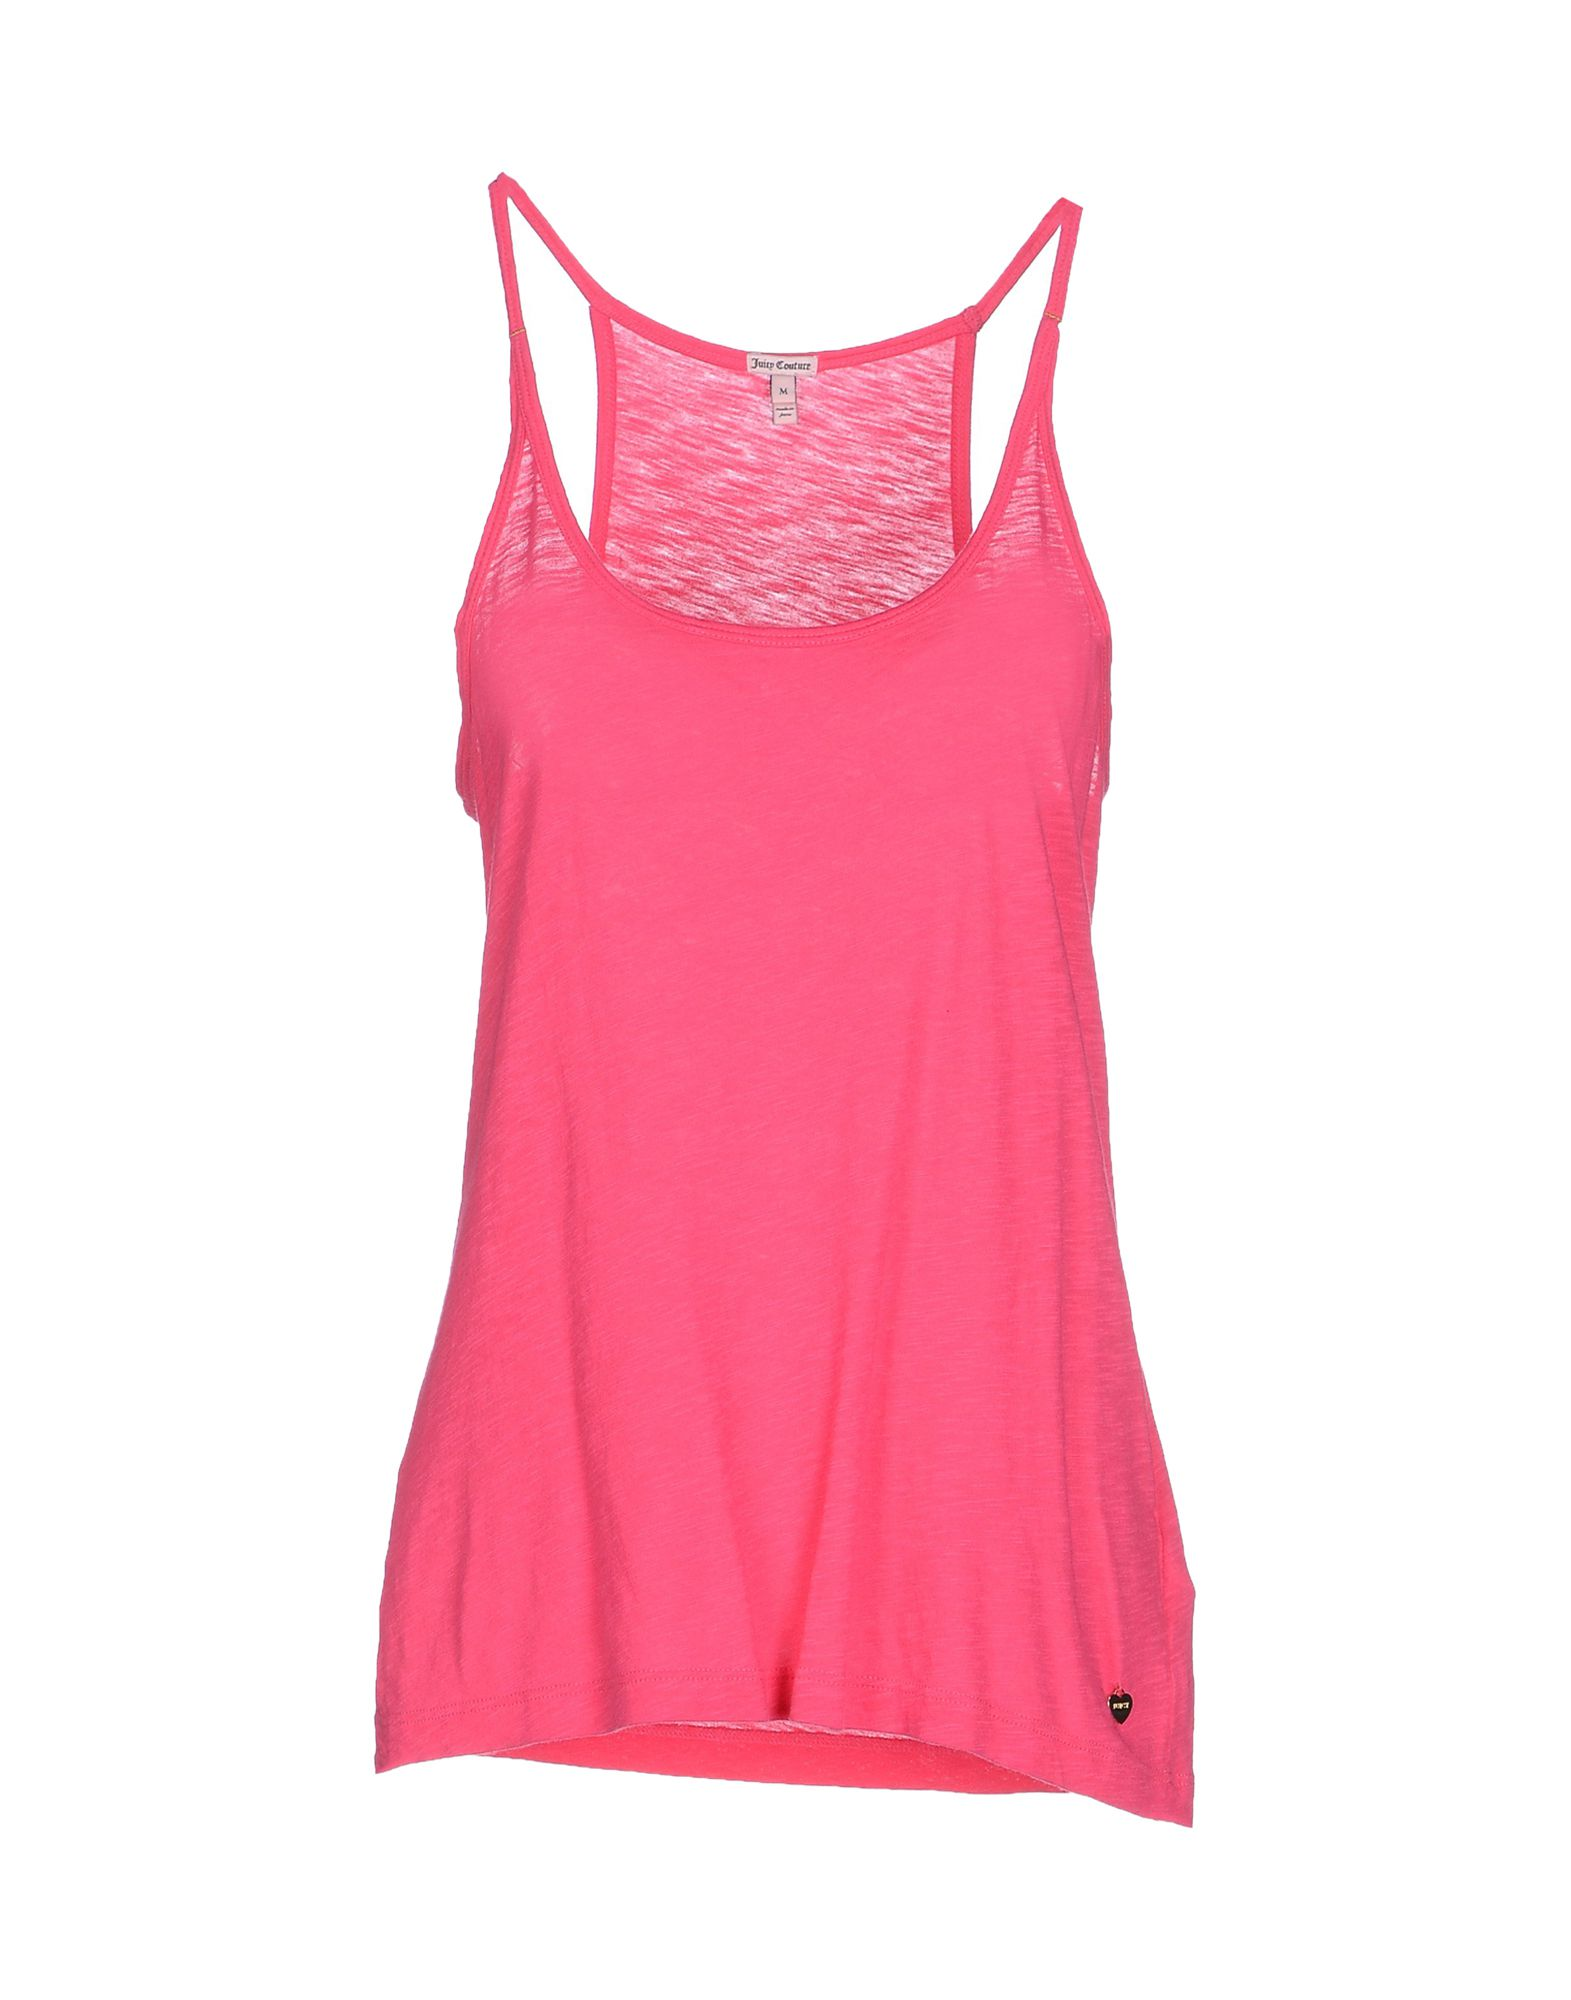 JUICY COUTURE Tank tops